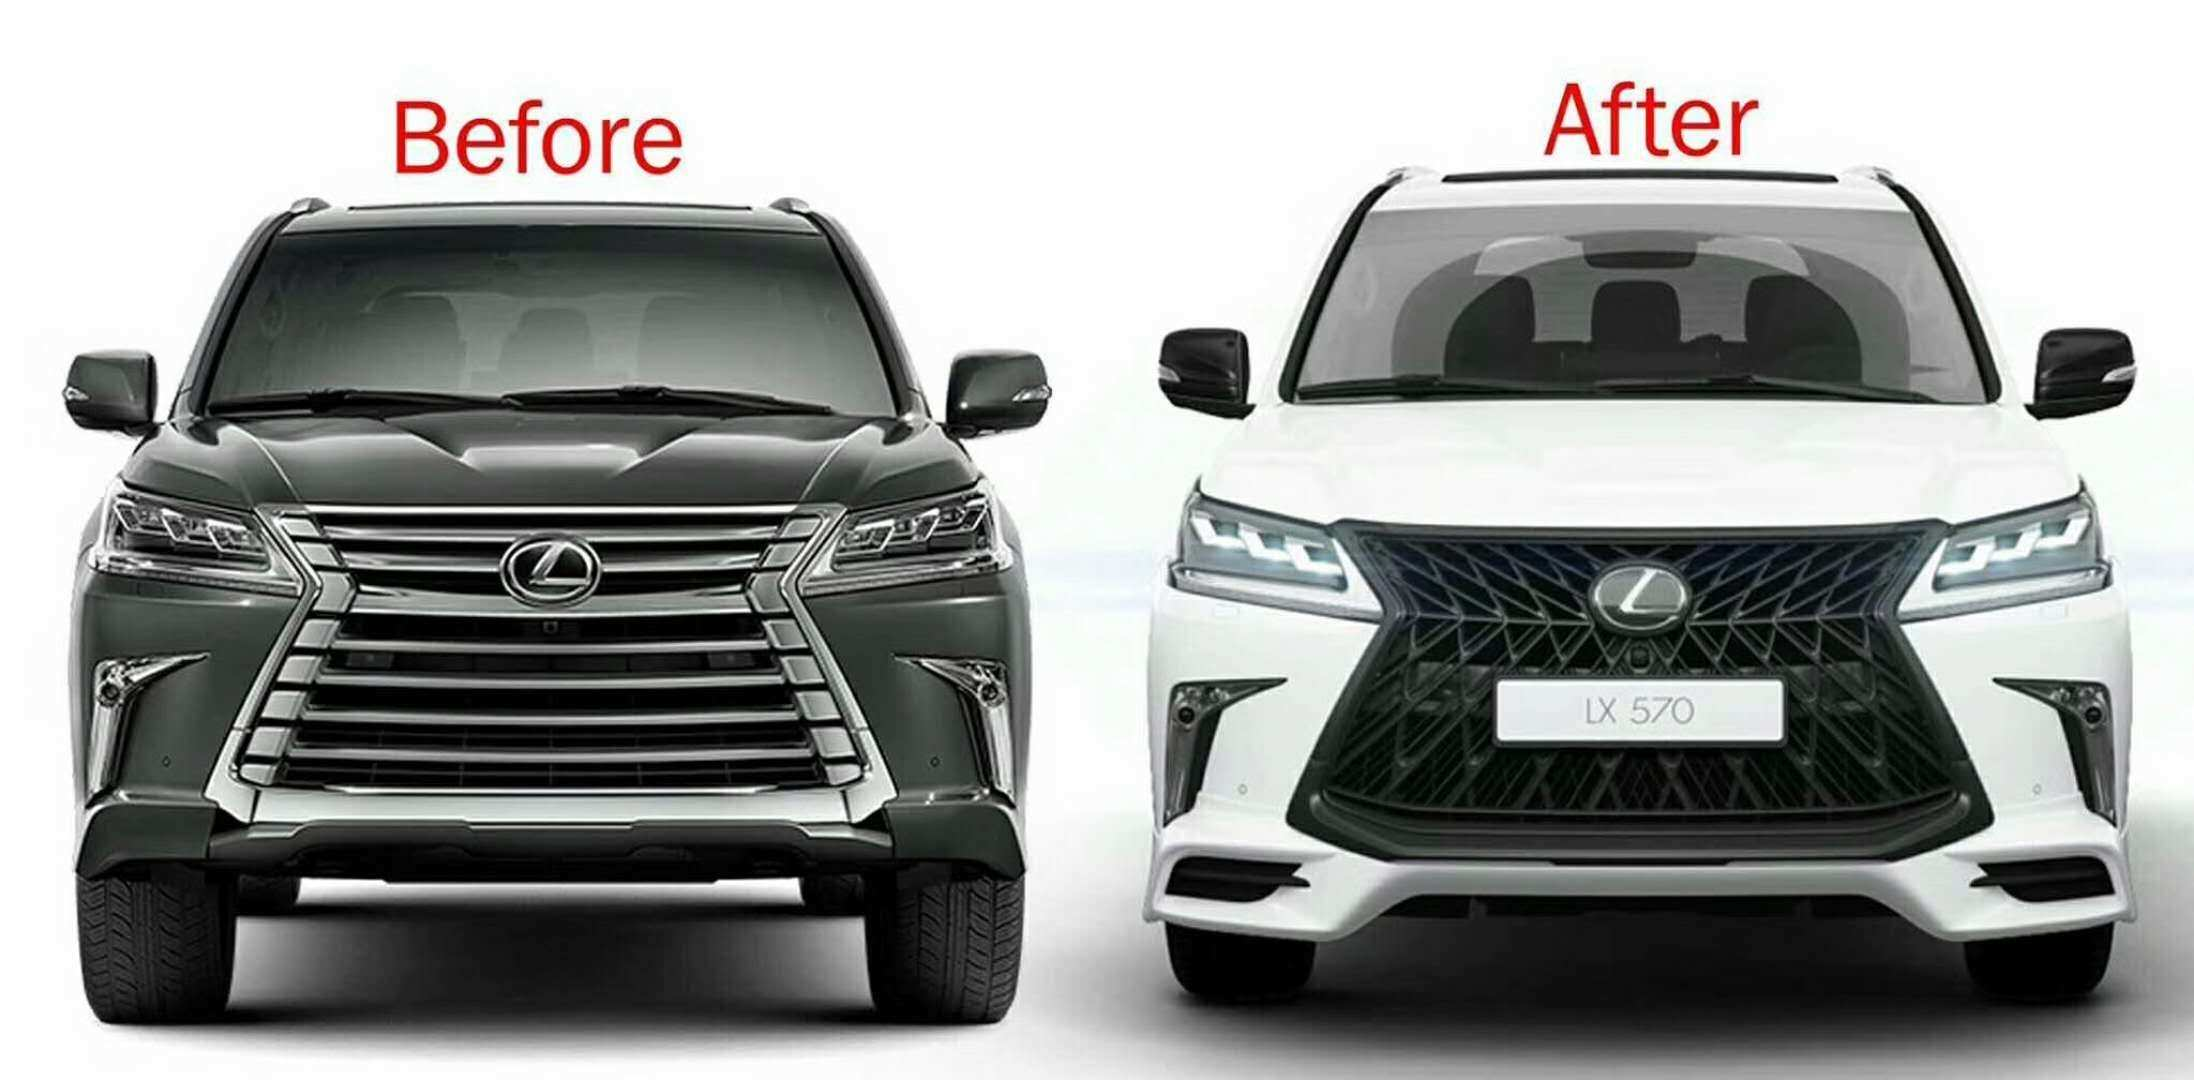 42 Best Lexus Lx 570 Year 2020 Price Design And Review